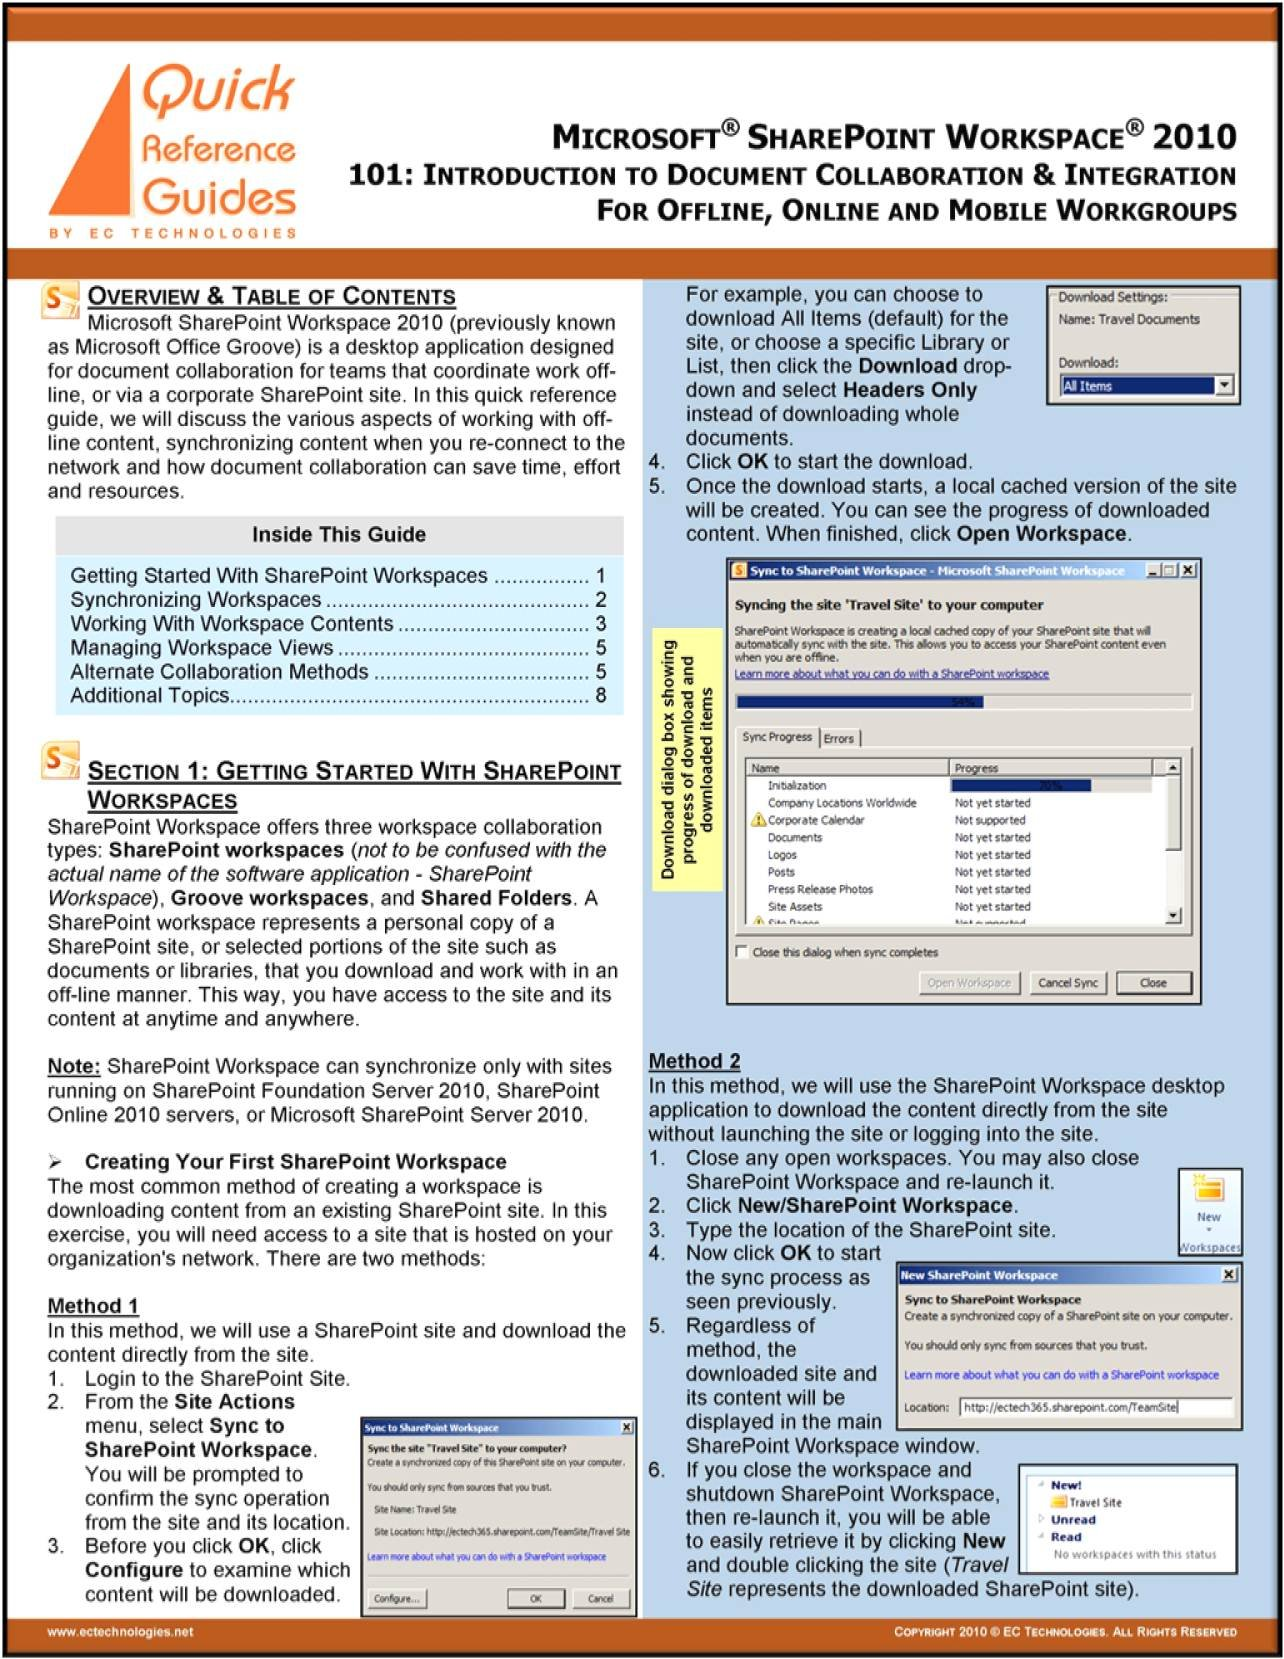 Microsoft SharePoint Workspace 2010 Quick Reference Guide - 101/202: Introduction To Document Collaboration & Integration For Offline, Online And Mobile Workgroups